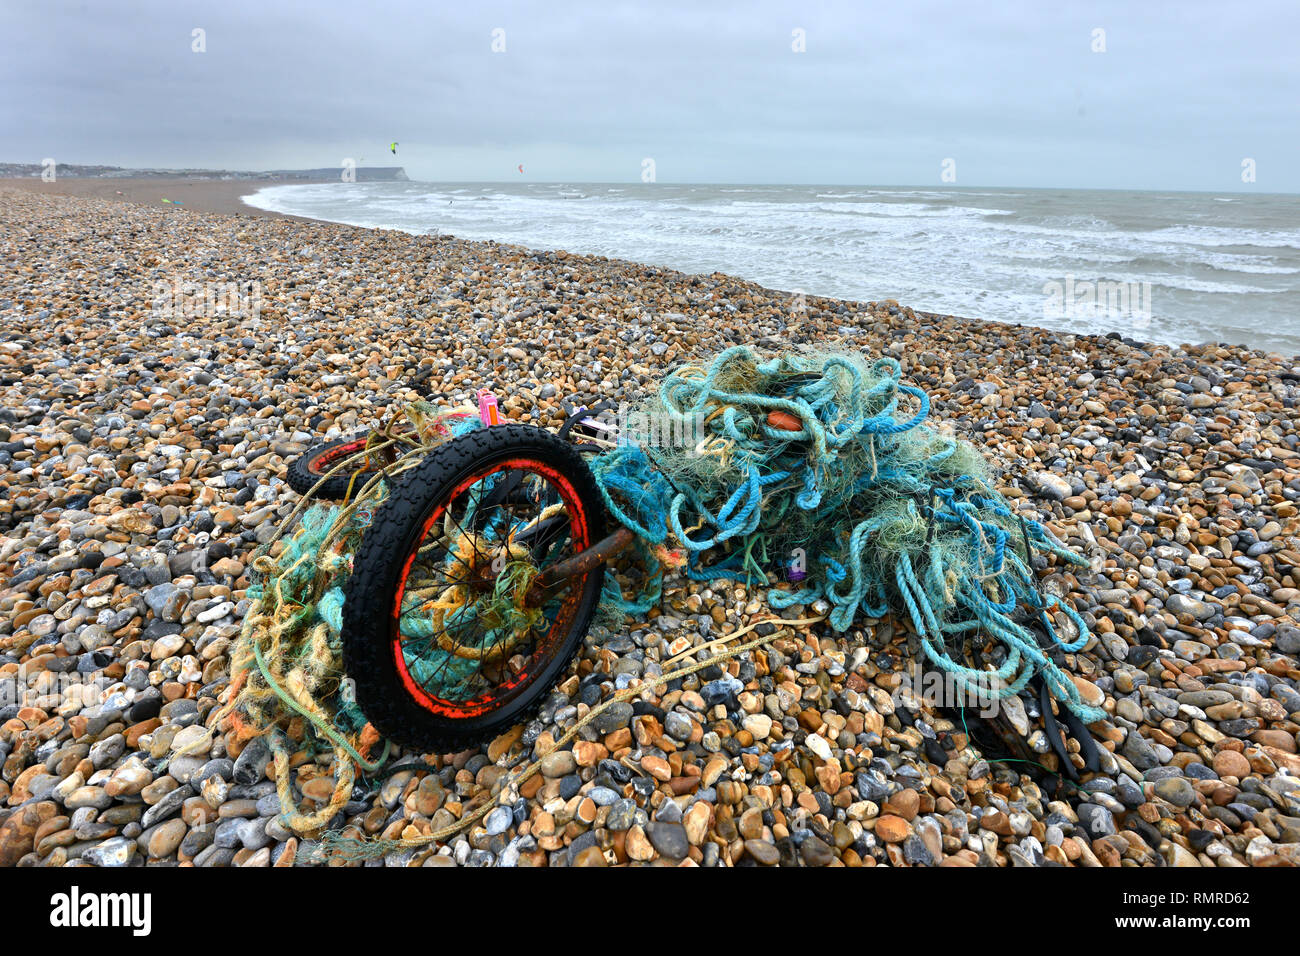 Old bike tangled in a plastic fishing net, discarded on a beach, East Sussex, UK - Stock Image